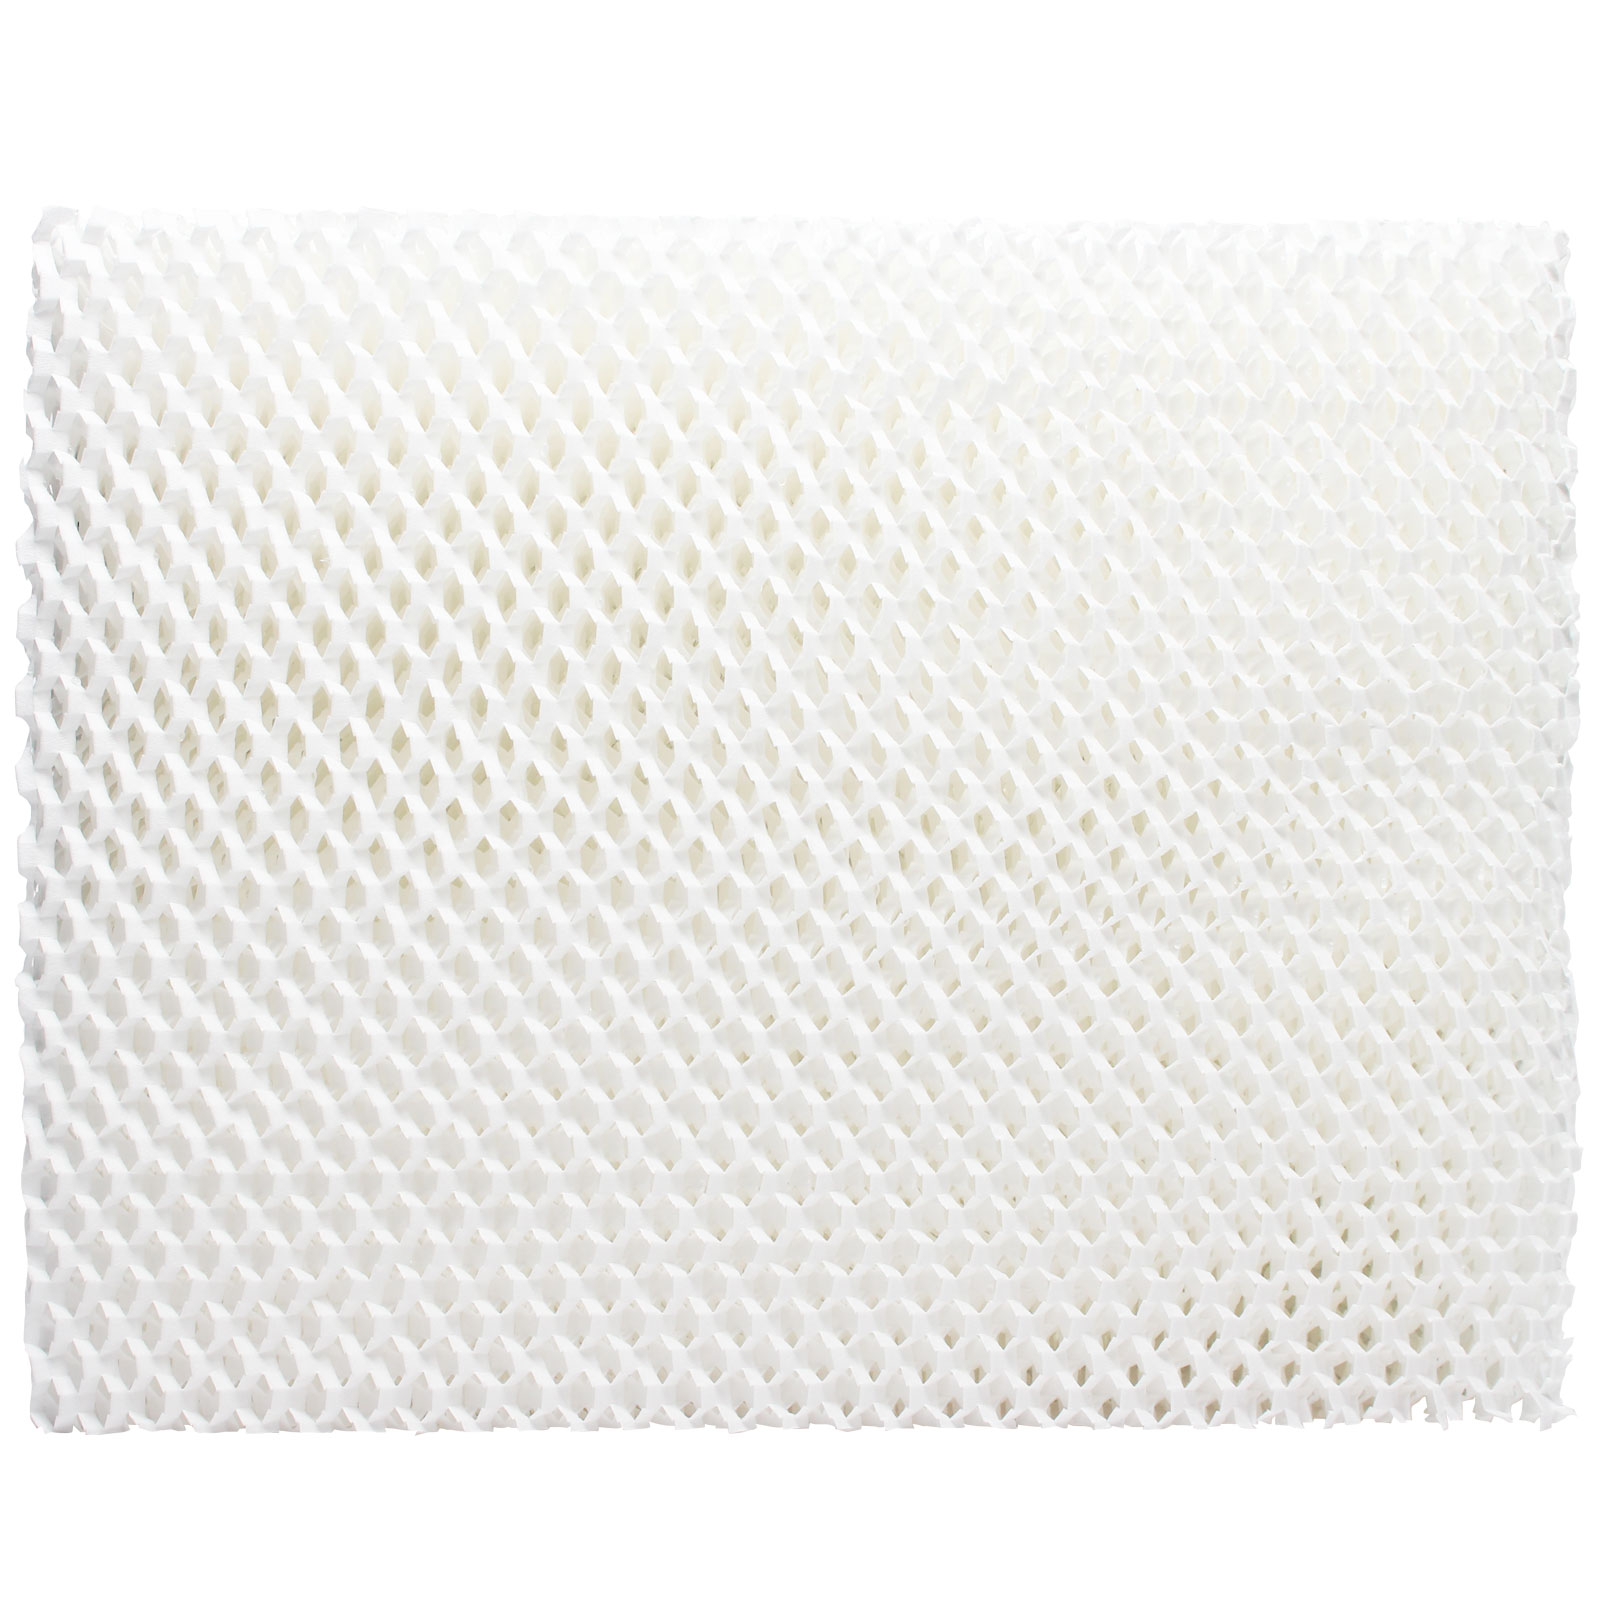 Replacement MD1-0002 filter for Vornado, Holmes - Compatible with Vornado Evap3, Vornado Evap2, Vornado MD1-0002, Vornado MD1-0001, Holmes HM725, Vornado 432, Vornado HU1-0021, Vornado Evap1 - image 1 of 4